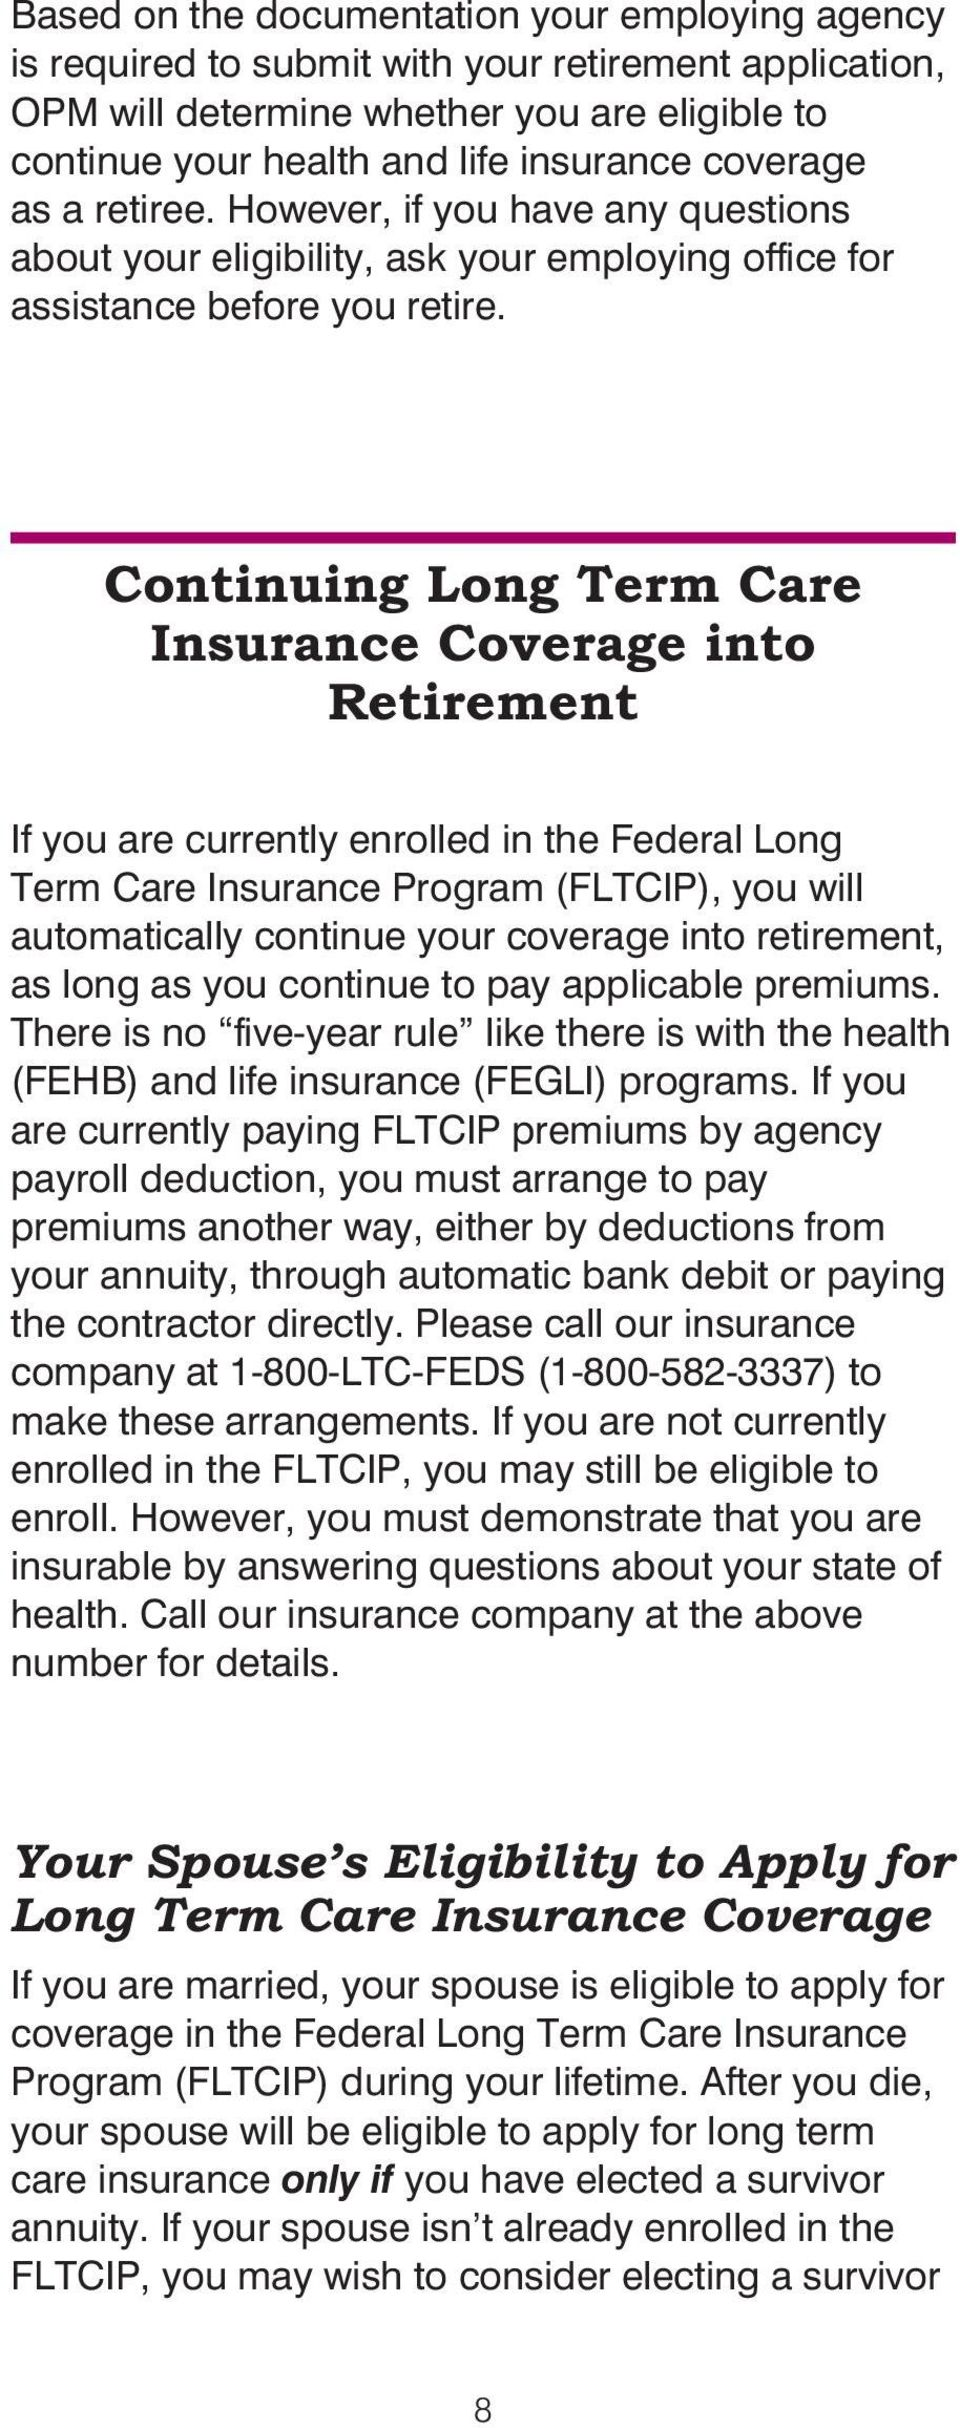 Continuing Long Term Care Insurance Coverage into Retirement If you are currently enrolled in the Federal Long Term Care Insurance Program (FLTCIP), you will automatically continue your coverage into